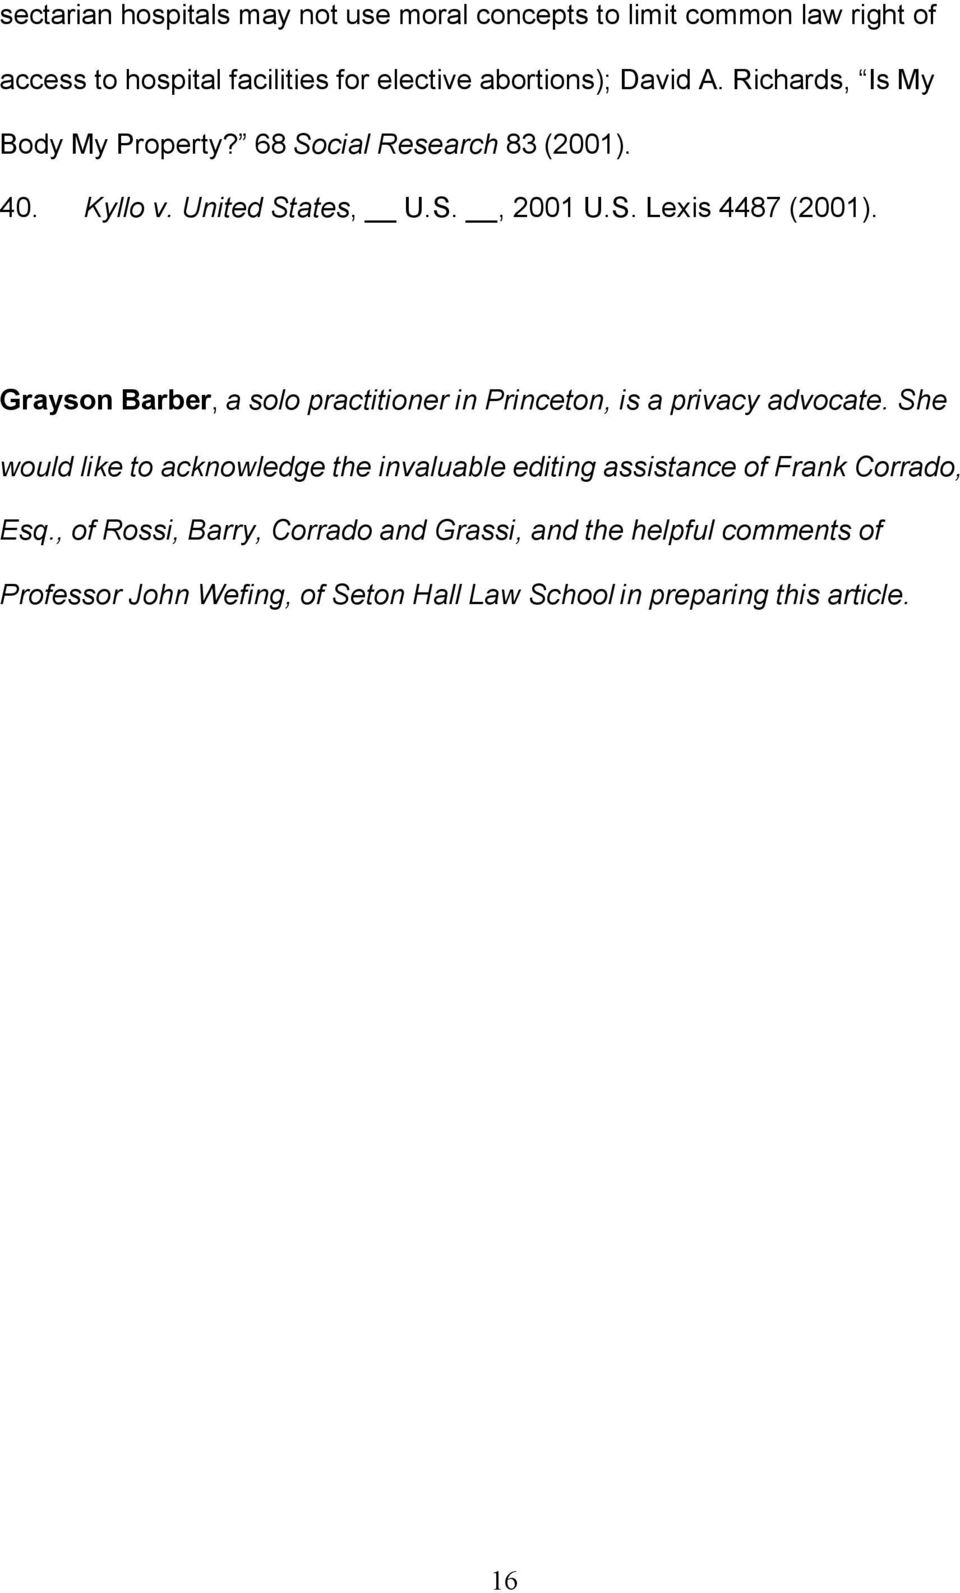 Grayson Barber, a solo practitioner in Princeton, is a privacy advocate.